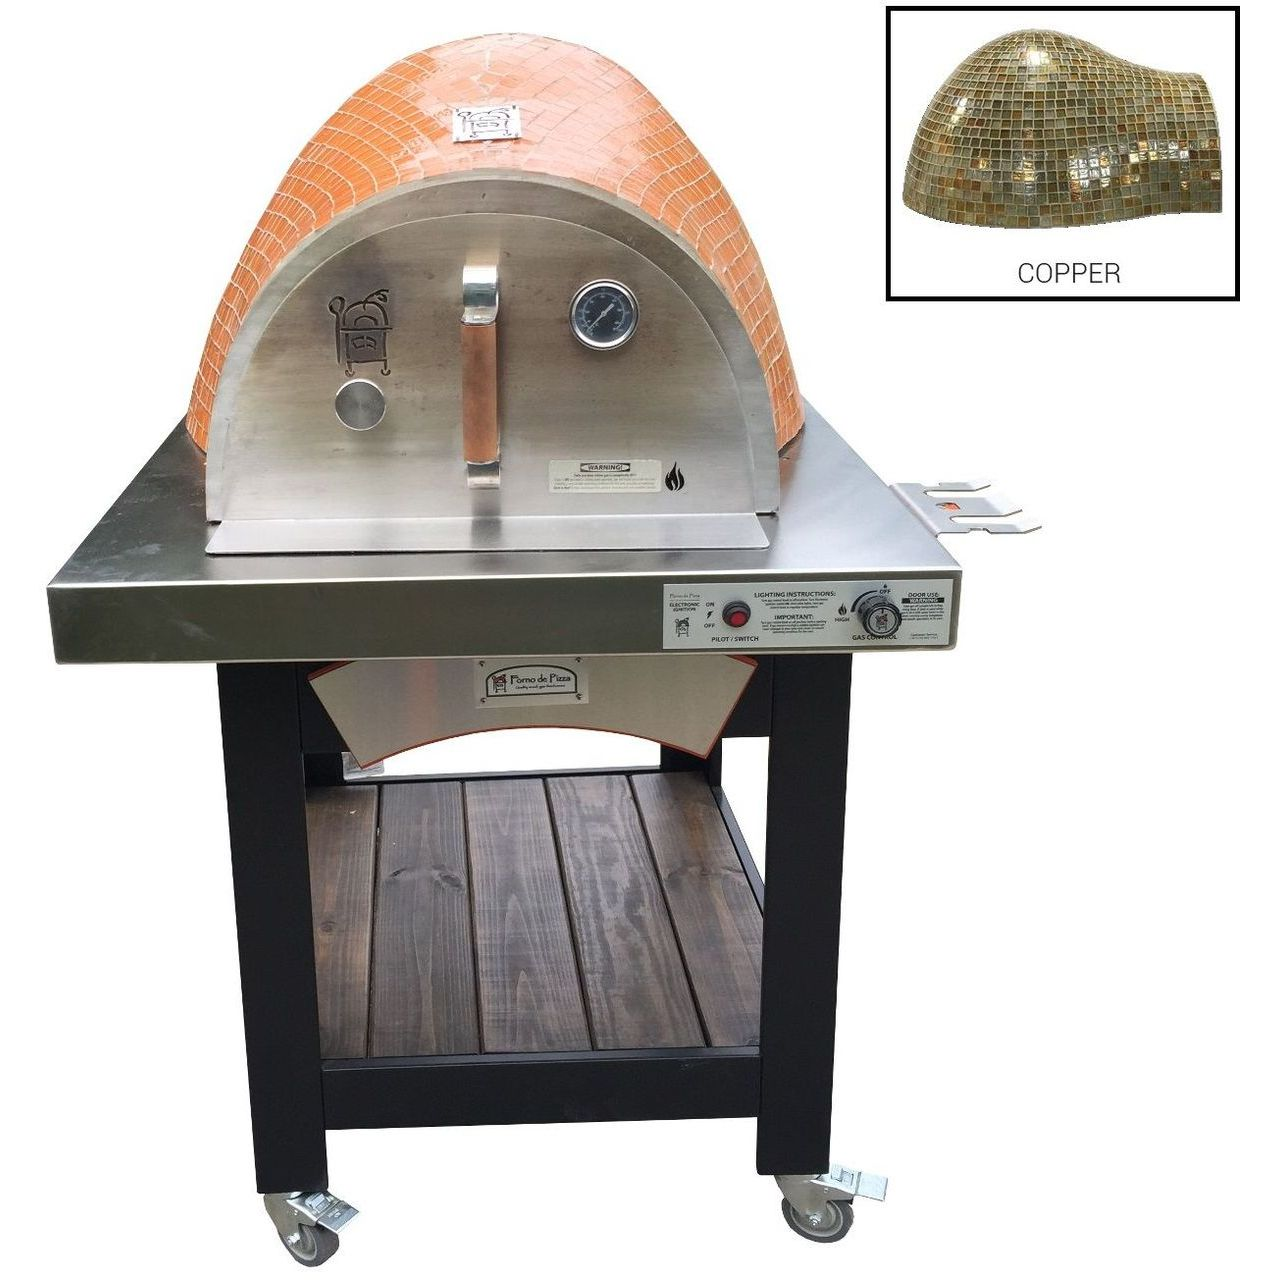 HPC Forno Hybrid Gas/Wood Oven With EI & Cart in Copper - NG